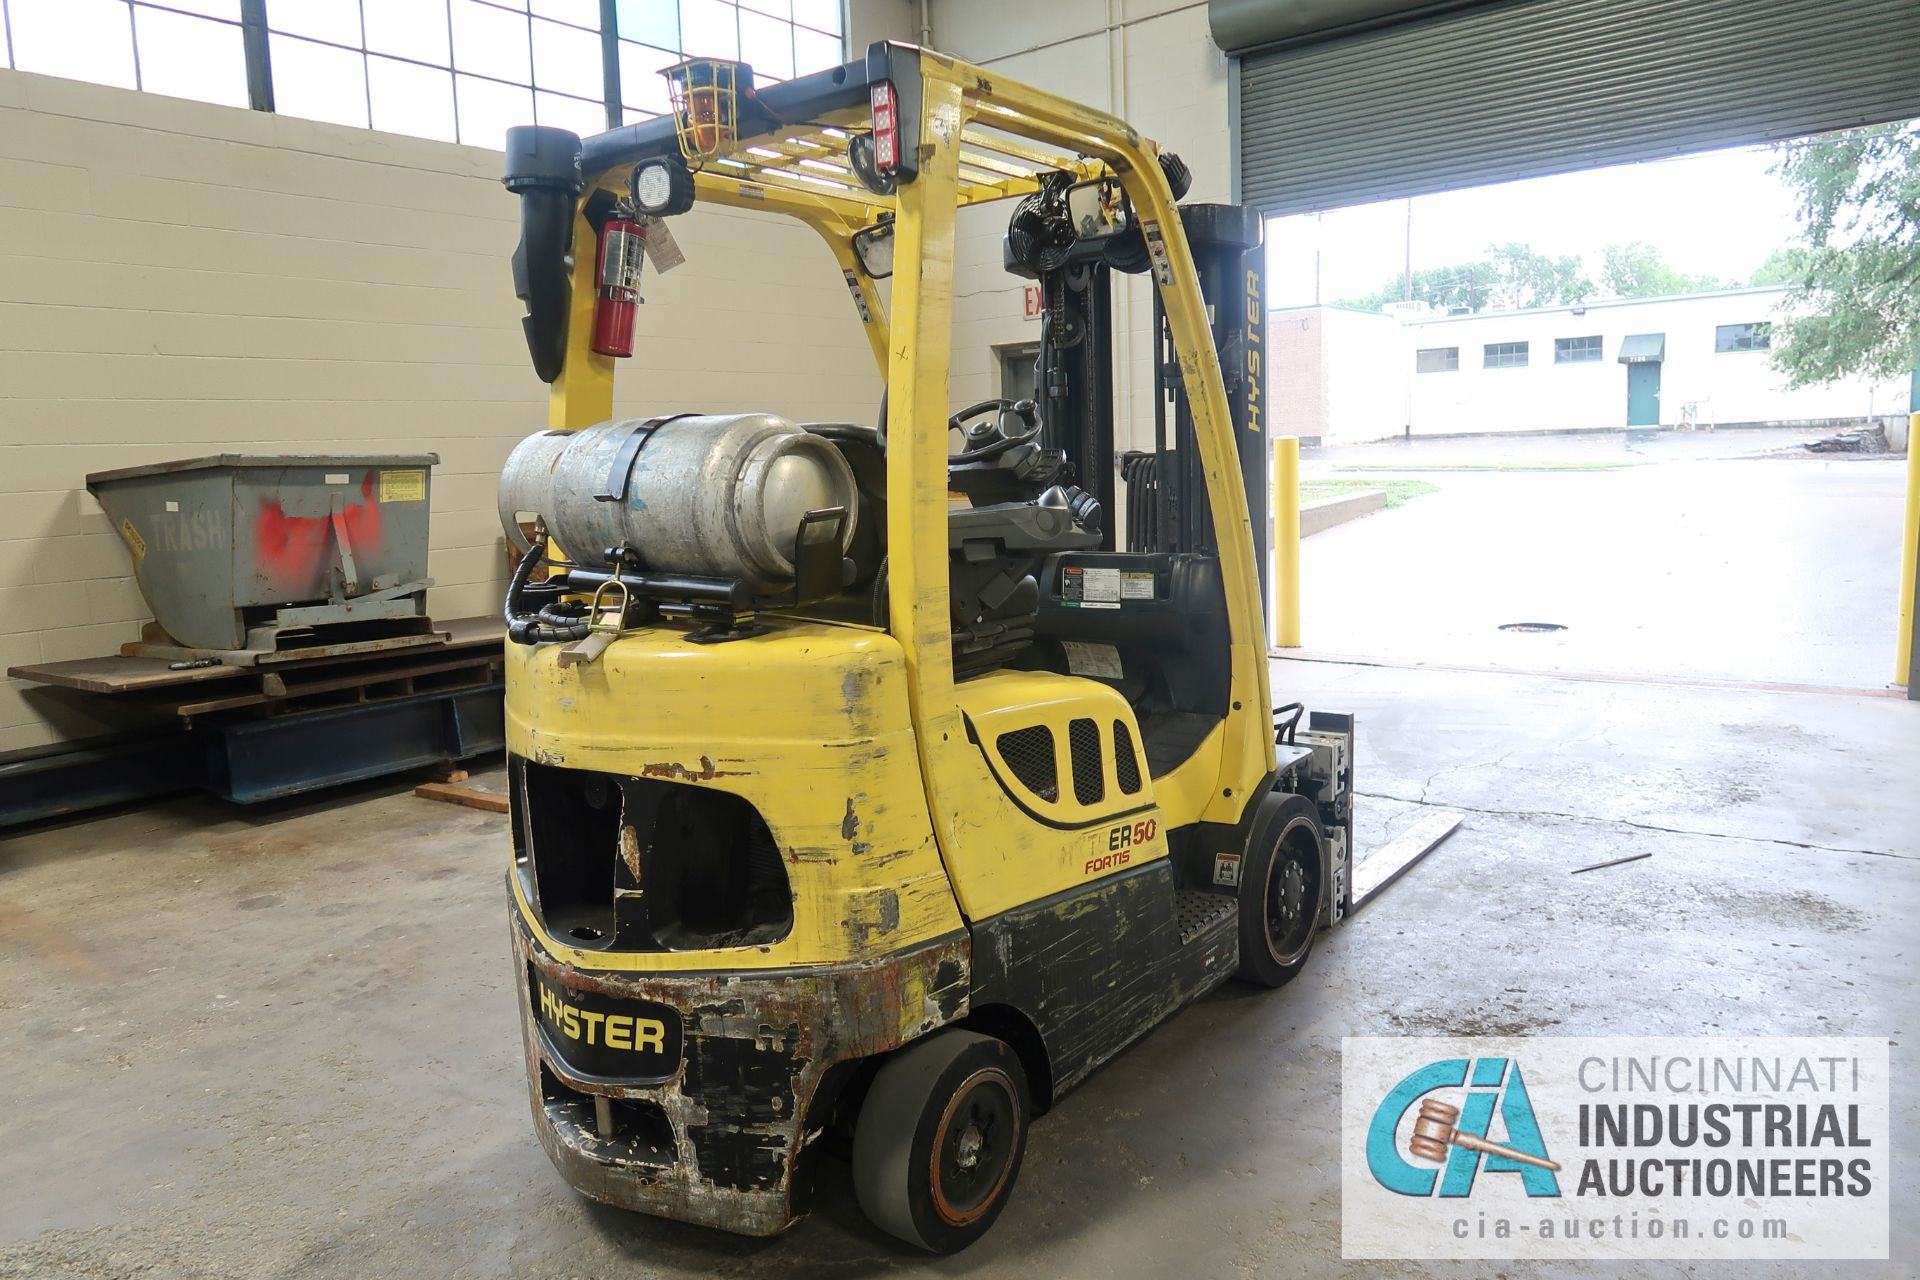 5,000 LB. HYSTER MODEL S50FT LP GAS CUSHION TIRE THREE-STAGE MAST LIFT TRUCK; S/N G187V01914M, - Image 4 of 11